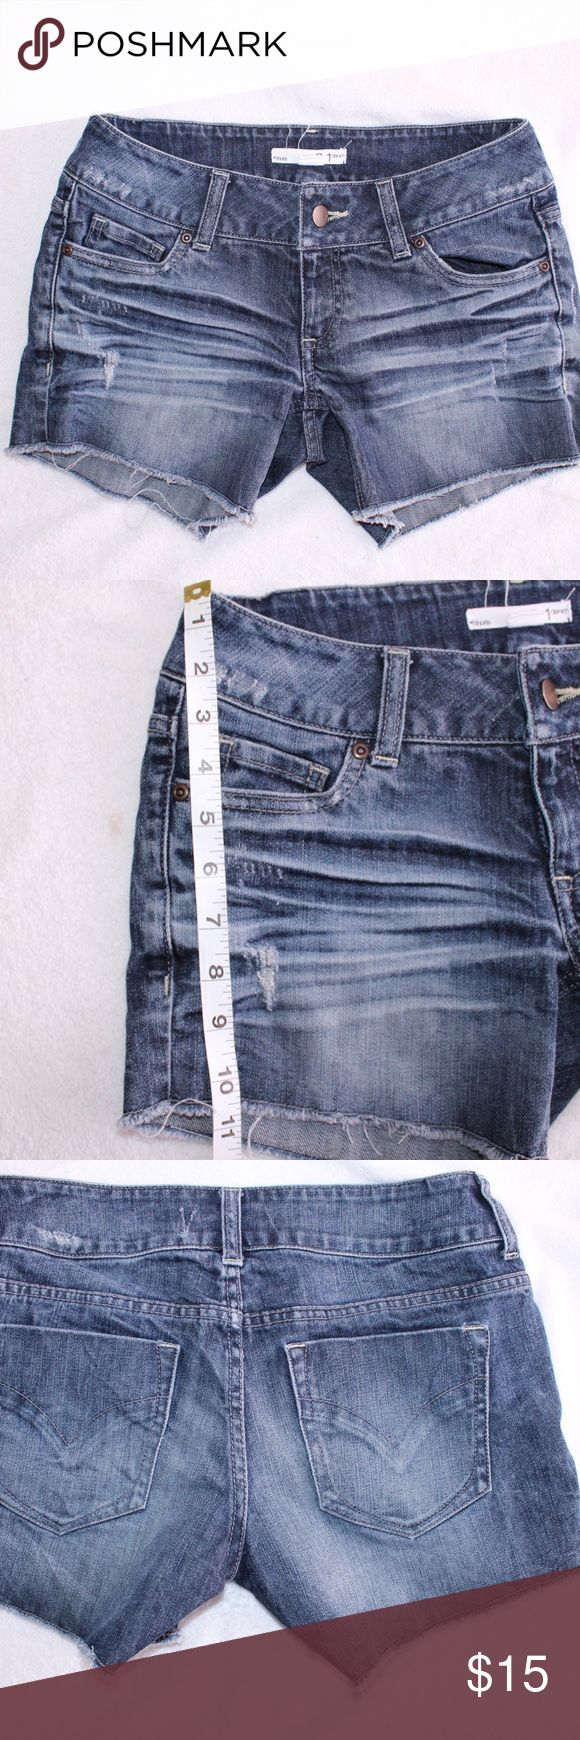 21 Denim Daisy Dukes Adorable Daisy Dukes! In perfect condition. No tears or snags. Bundle and save! Forever 21 Shorts Jean Shorts